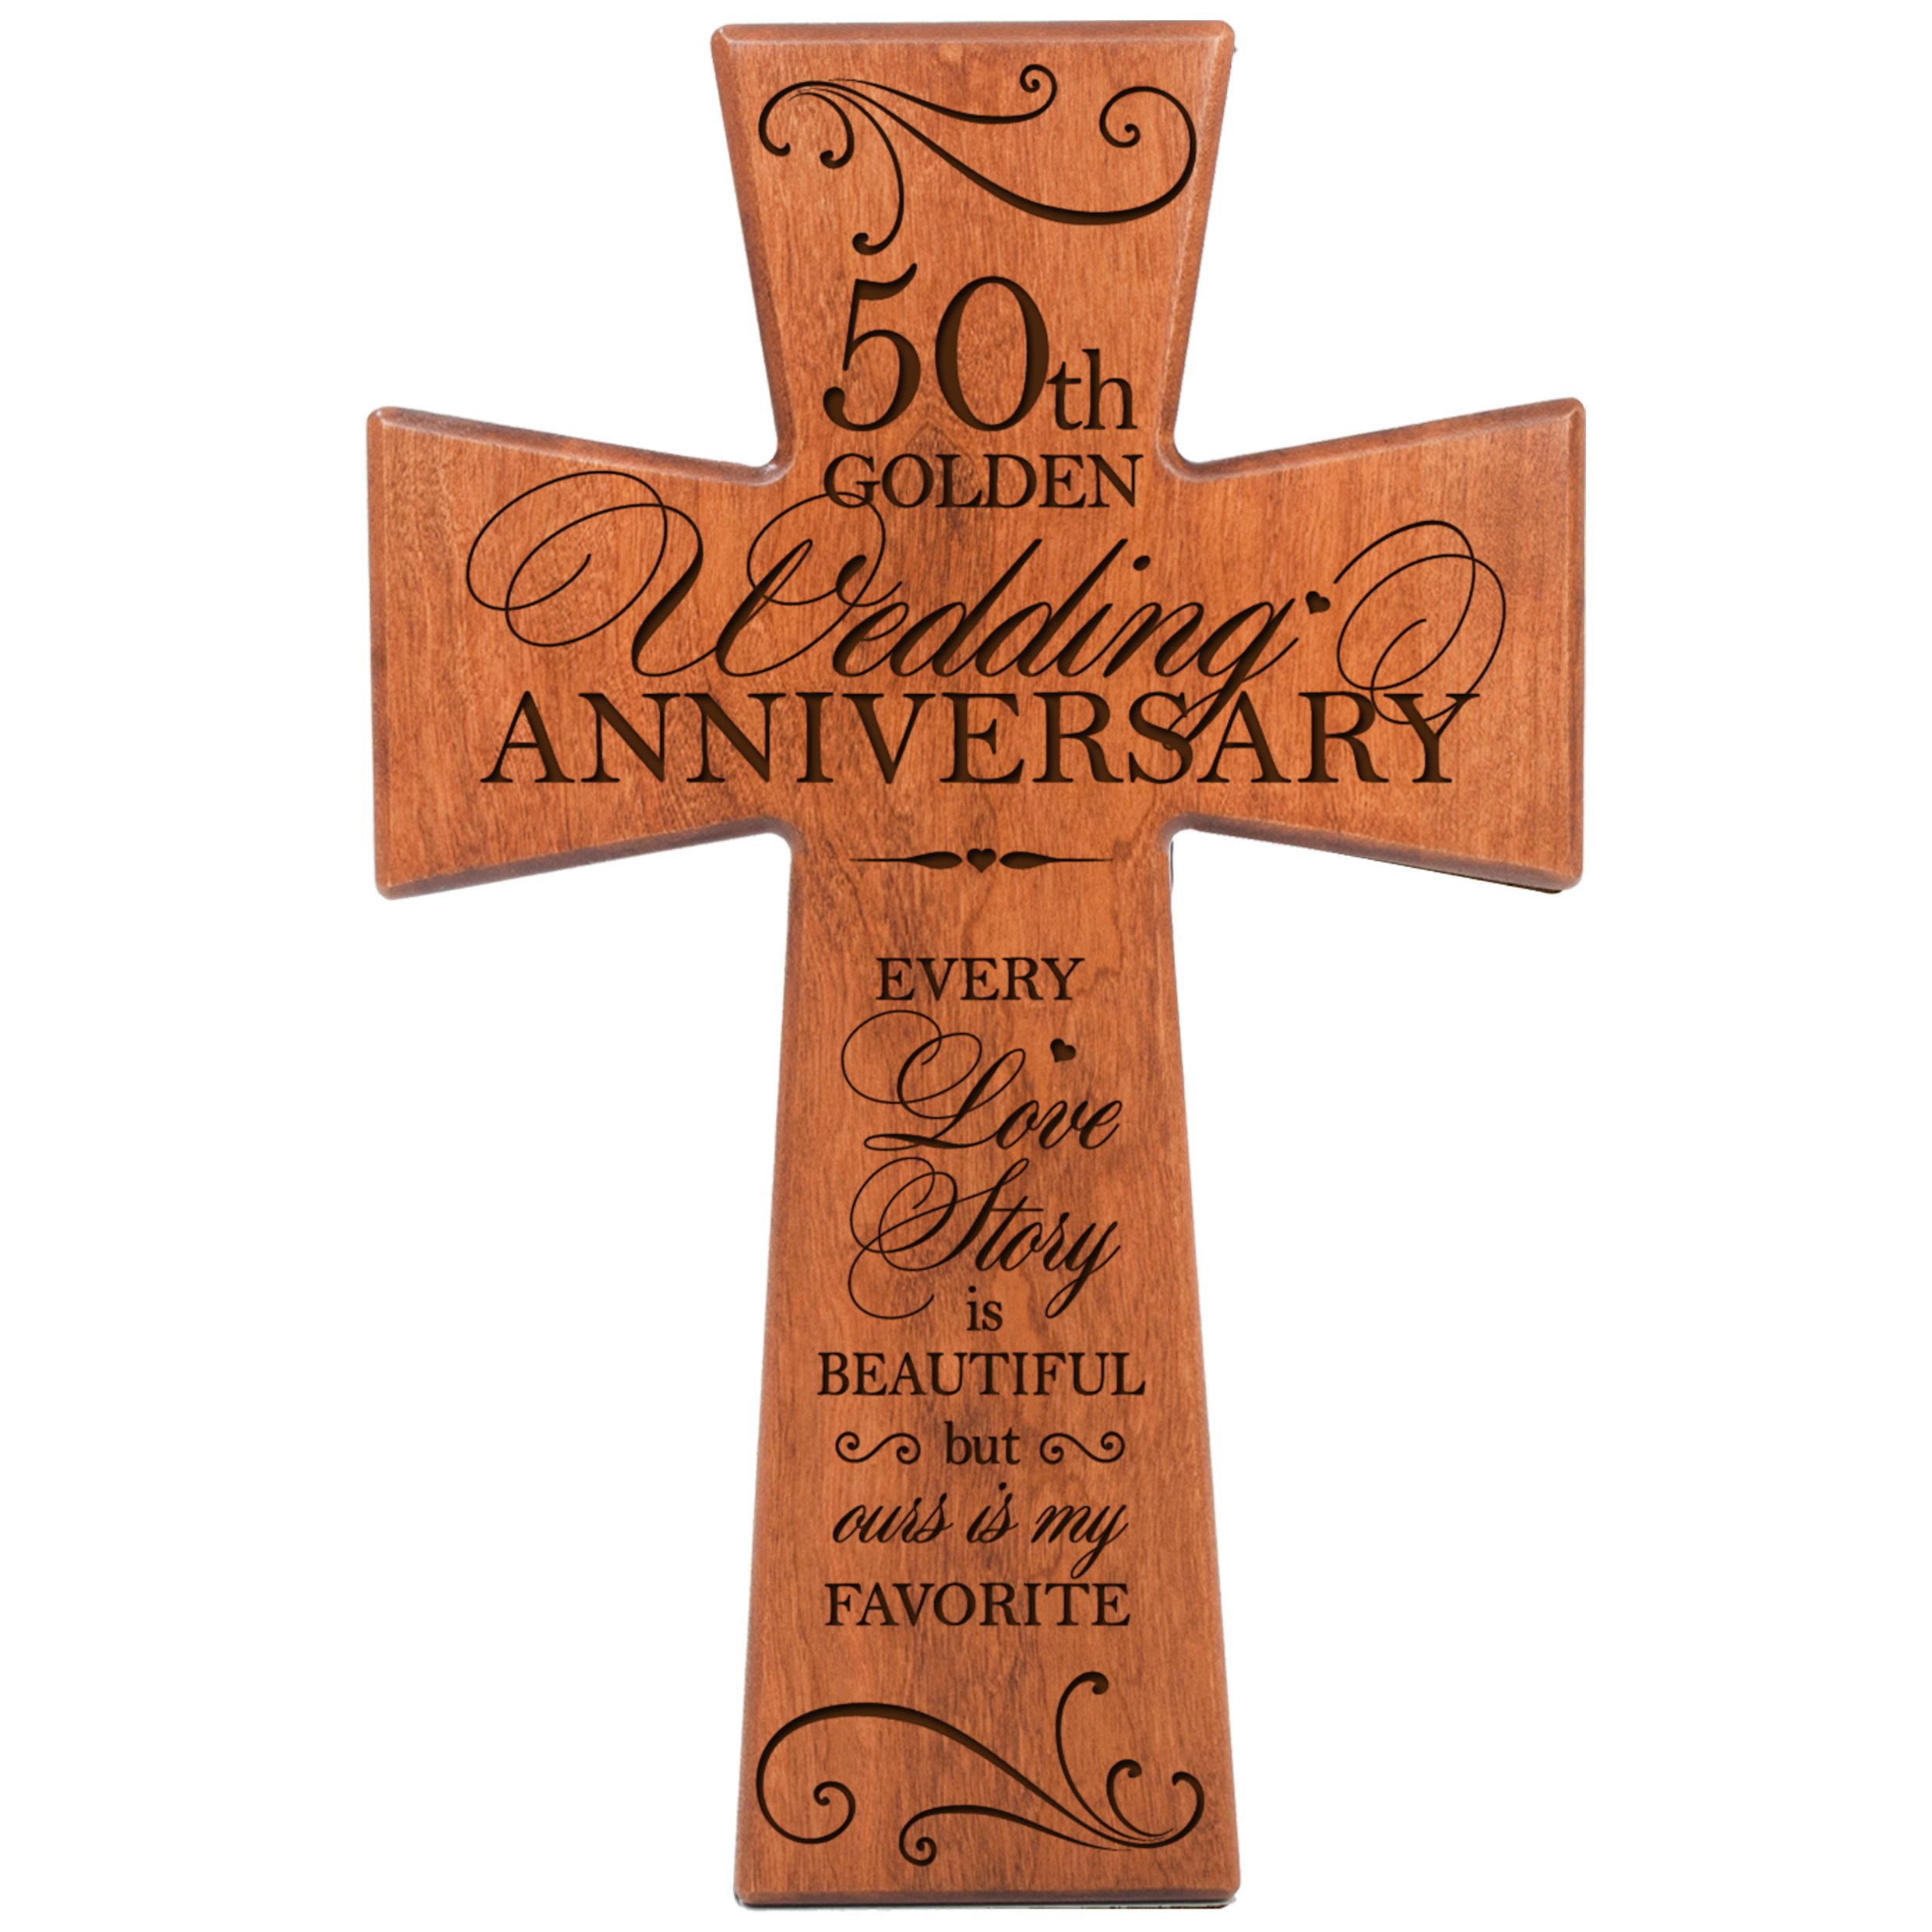 LifeSong Milestones 50th Wedding Anniversary Cherry Wood Wall Cross Gift for Couple,50th for Her,50th Wedding for Him Every Love Story is Beautiful but Ours is My Favorite # 62868 by LifeSong Milestones